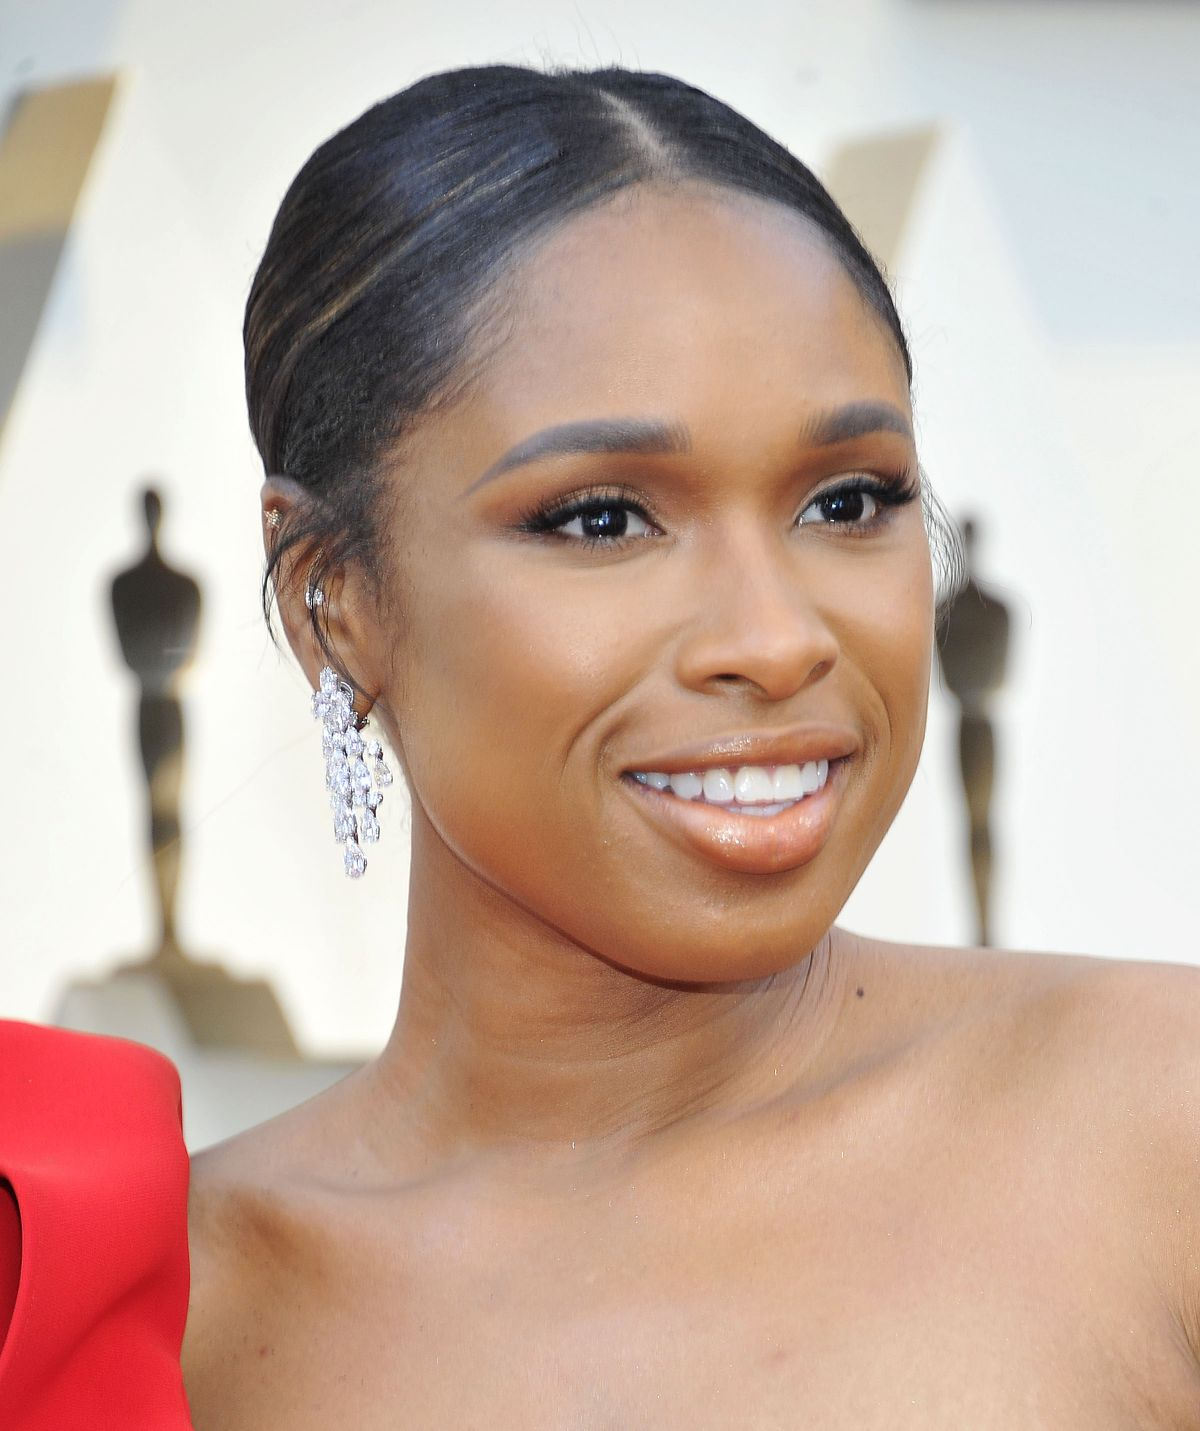 JENNIFER HUDSON at Oscars 2019 in Los Angeles 02/24/2019 ...